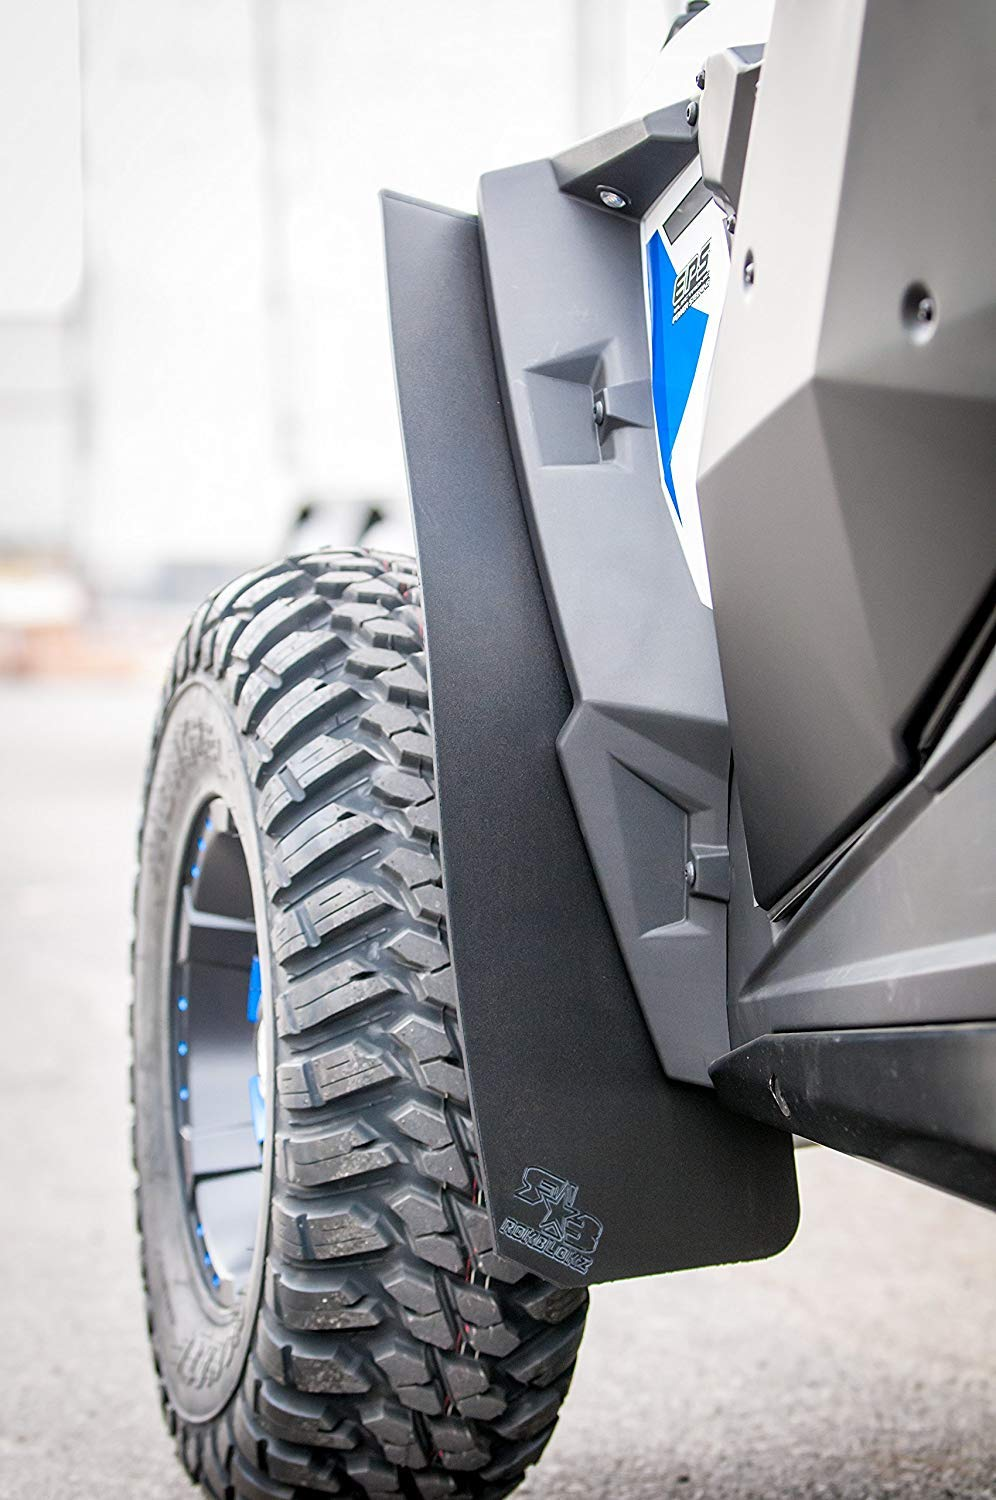 SET of Extra Large MUD EDITION Mud Flaps By RokBlokz Rigid Design Better than OEM Deflectors Best UTV Mud Guards Polaris RZR 1000 Mud Flaps 2014-2015 Fender Extensions Keep Mud Off of Your RZR